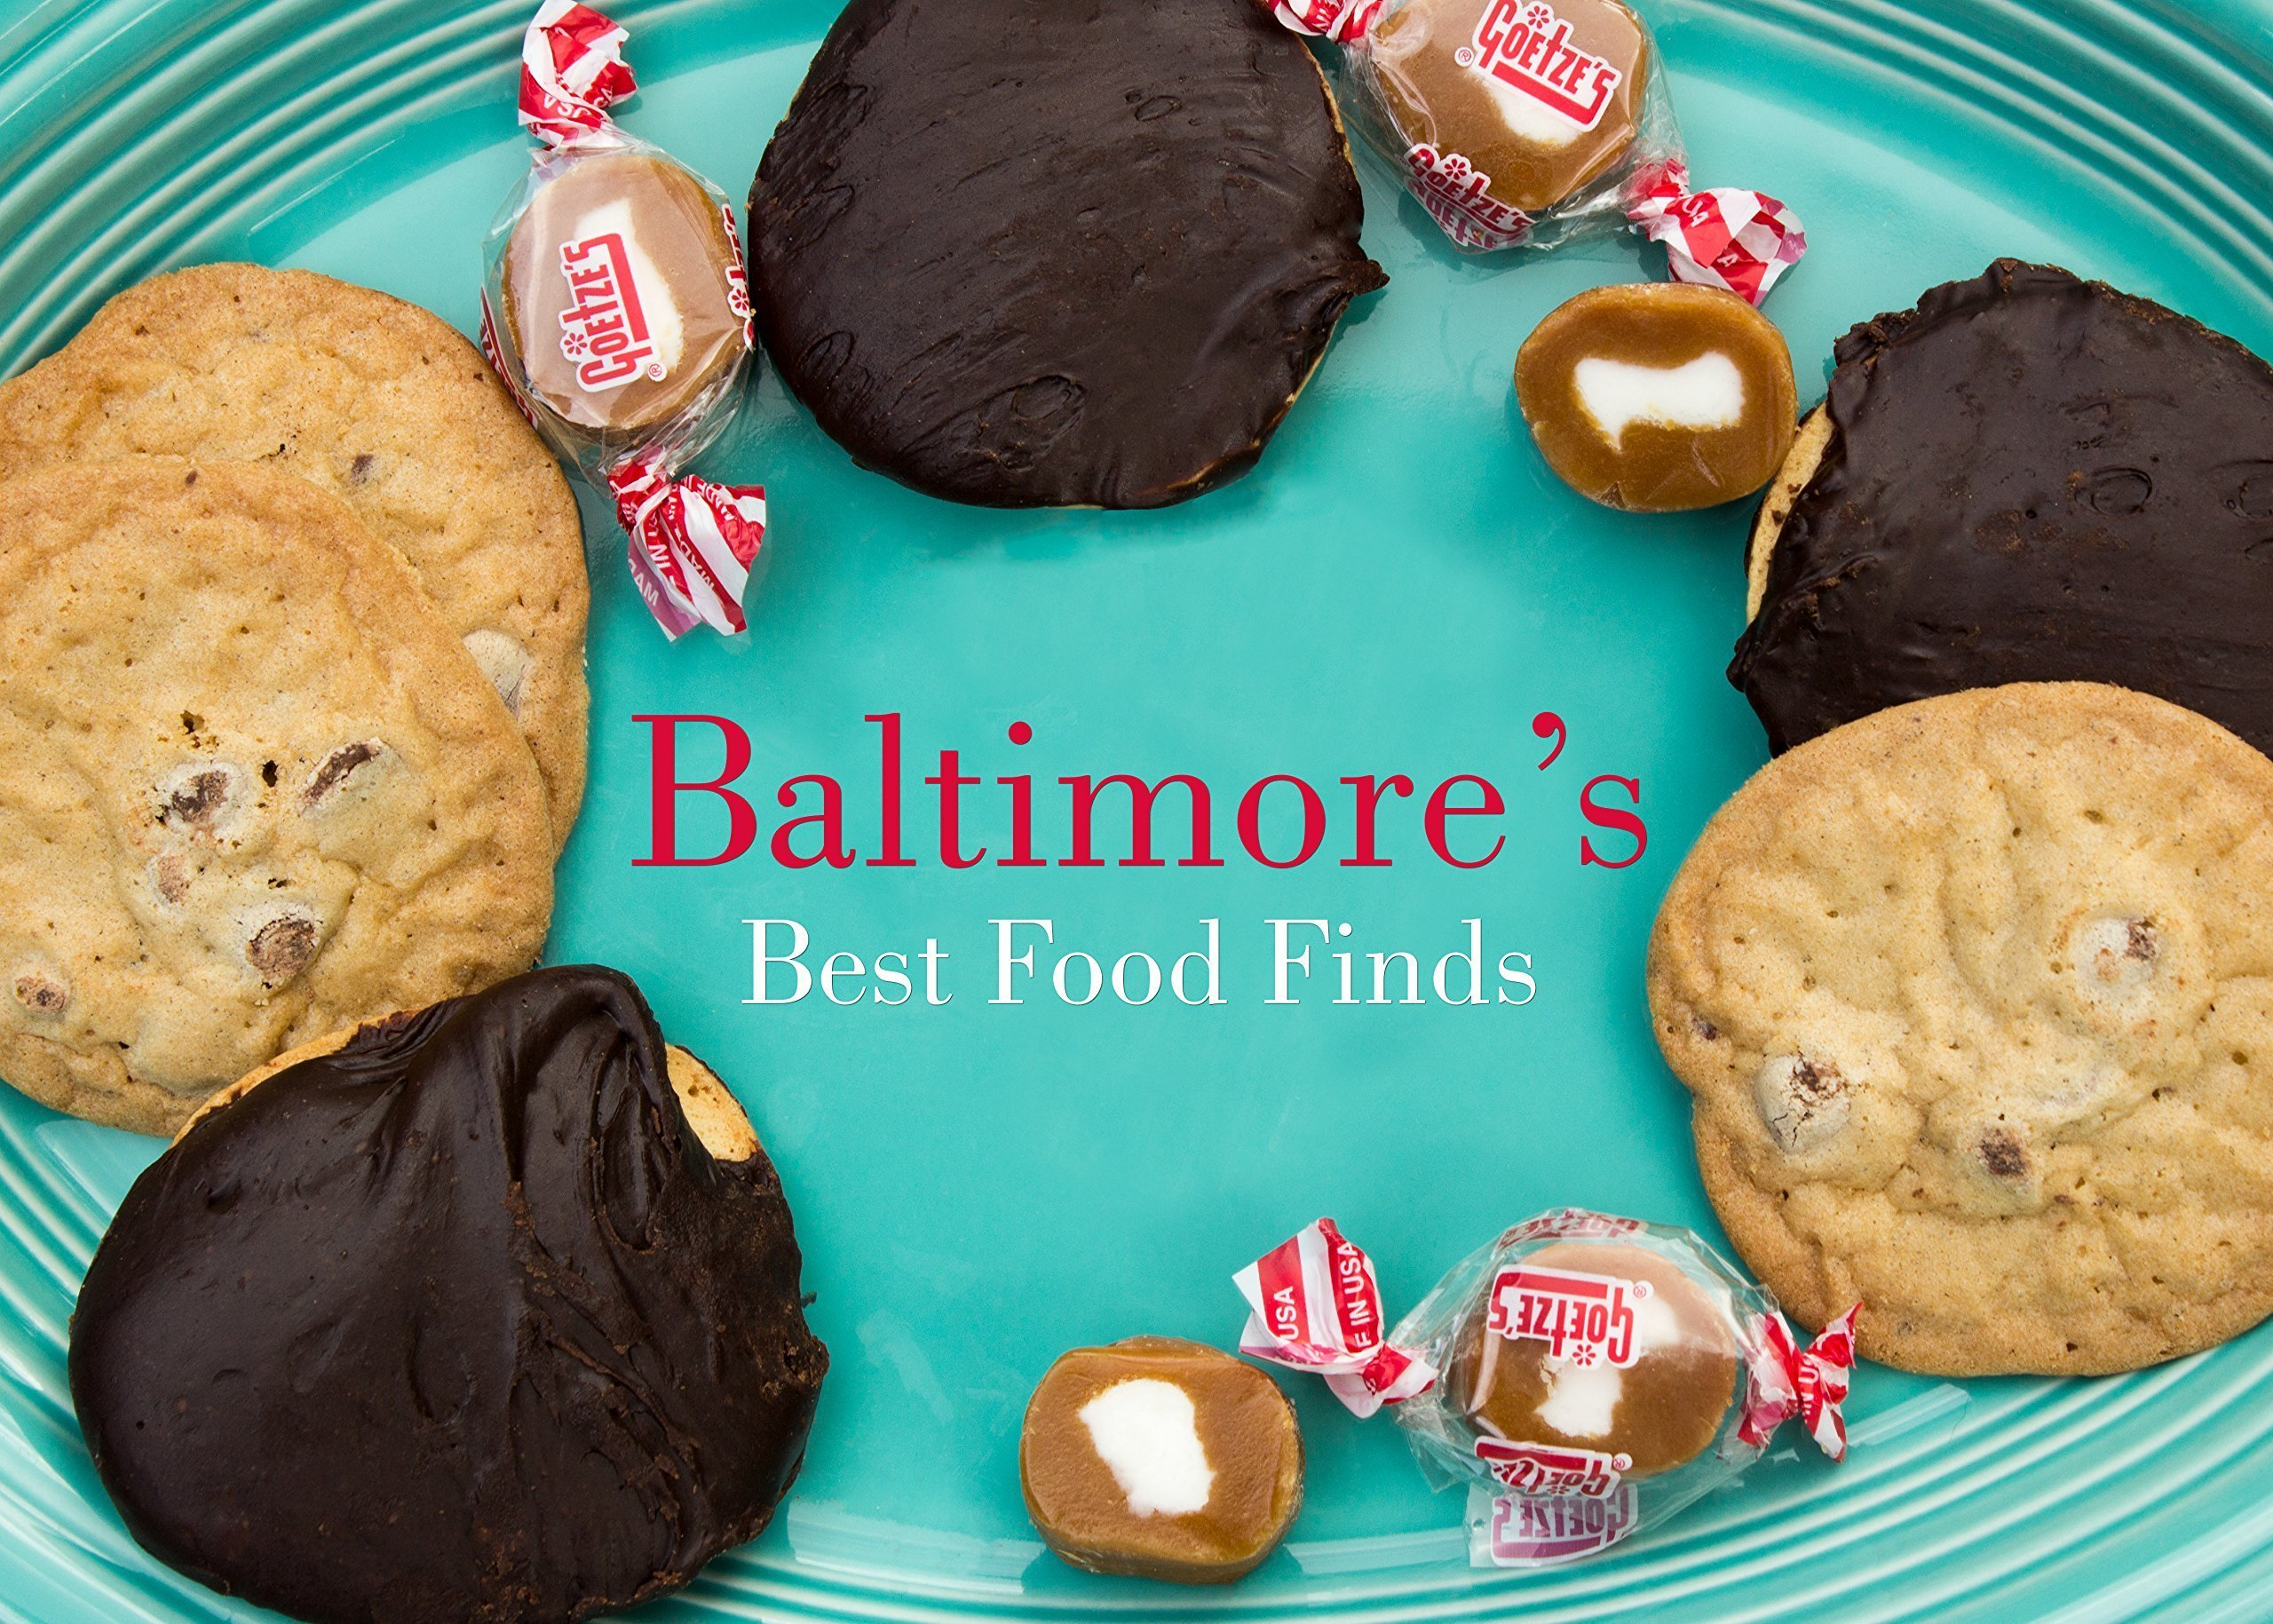 Berger Cookies, Goetze's Caramel Creams Candy, Otterbein's Cookies and Baltimore's Best Food Finds List. A 4 Item Gift Bundle by Baltimore Food Gifts